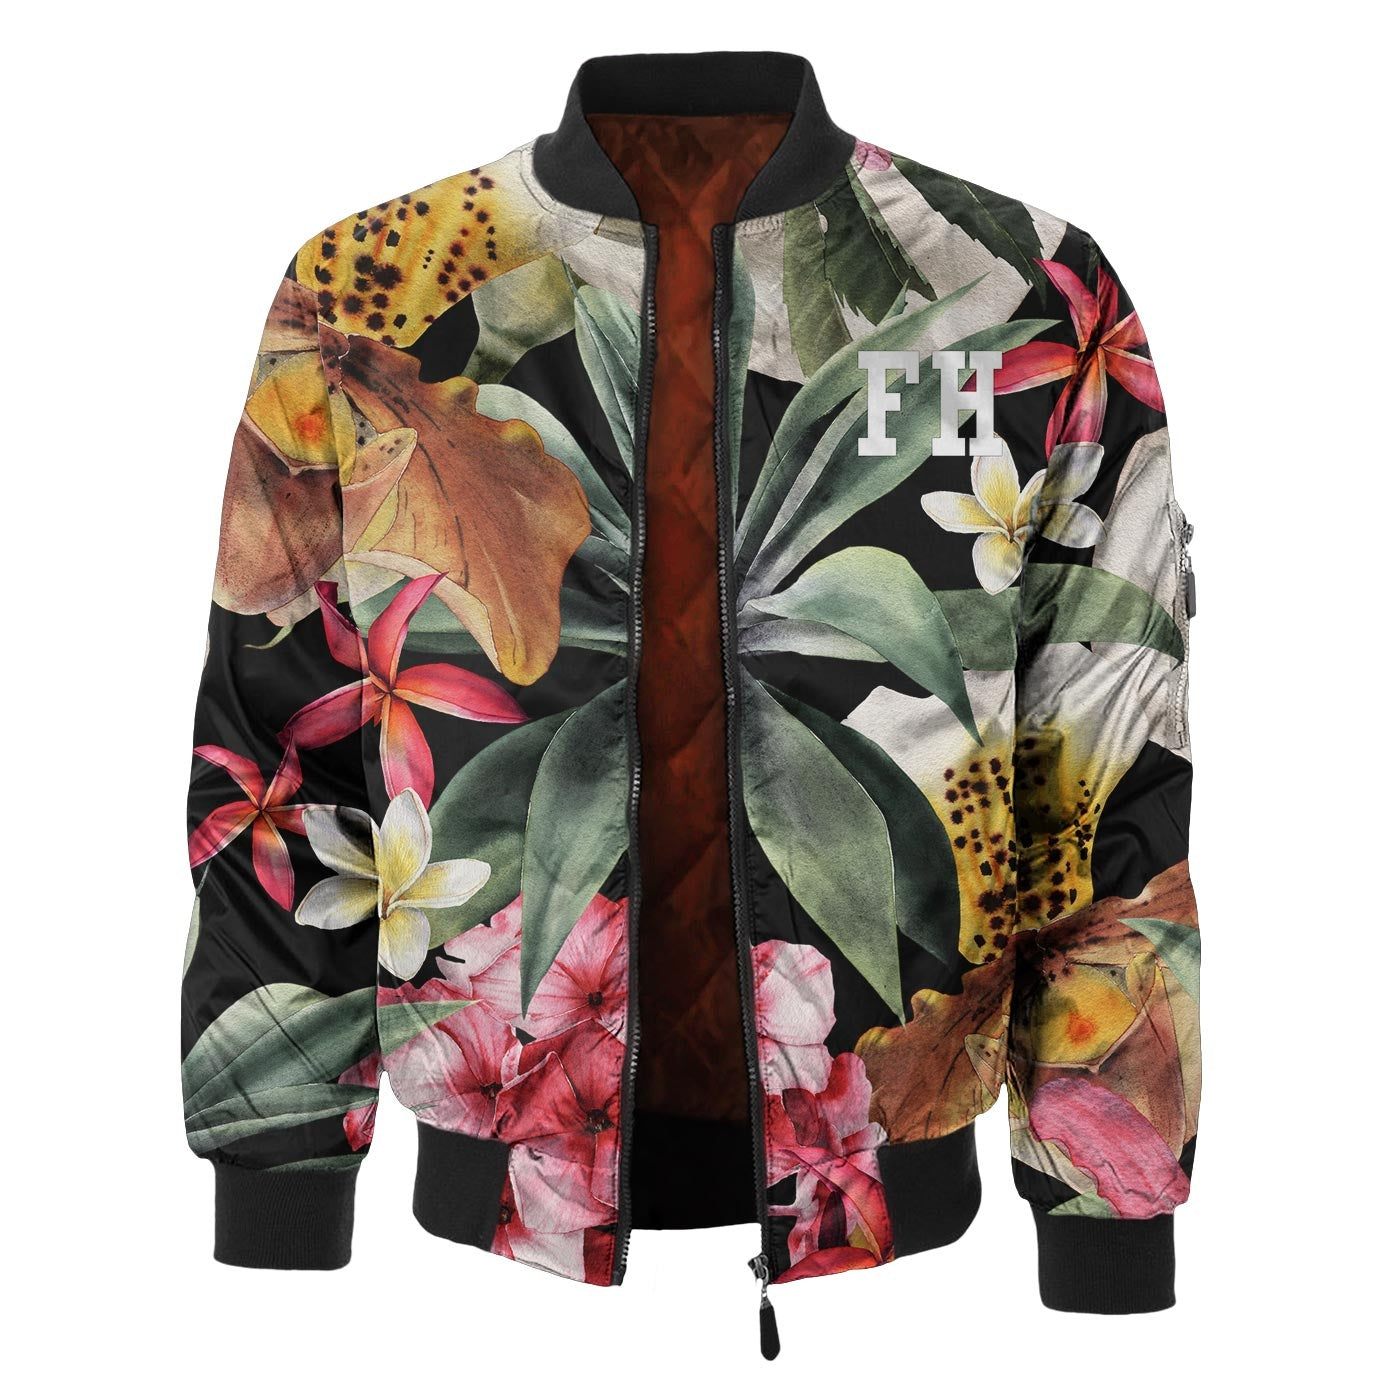 Secret Garden Bomber Jacket